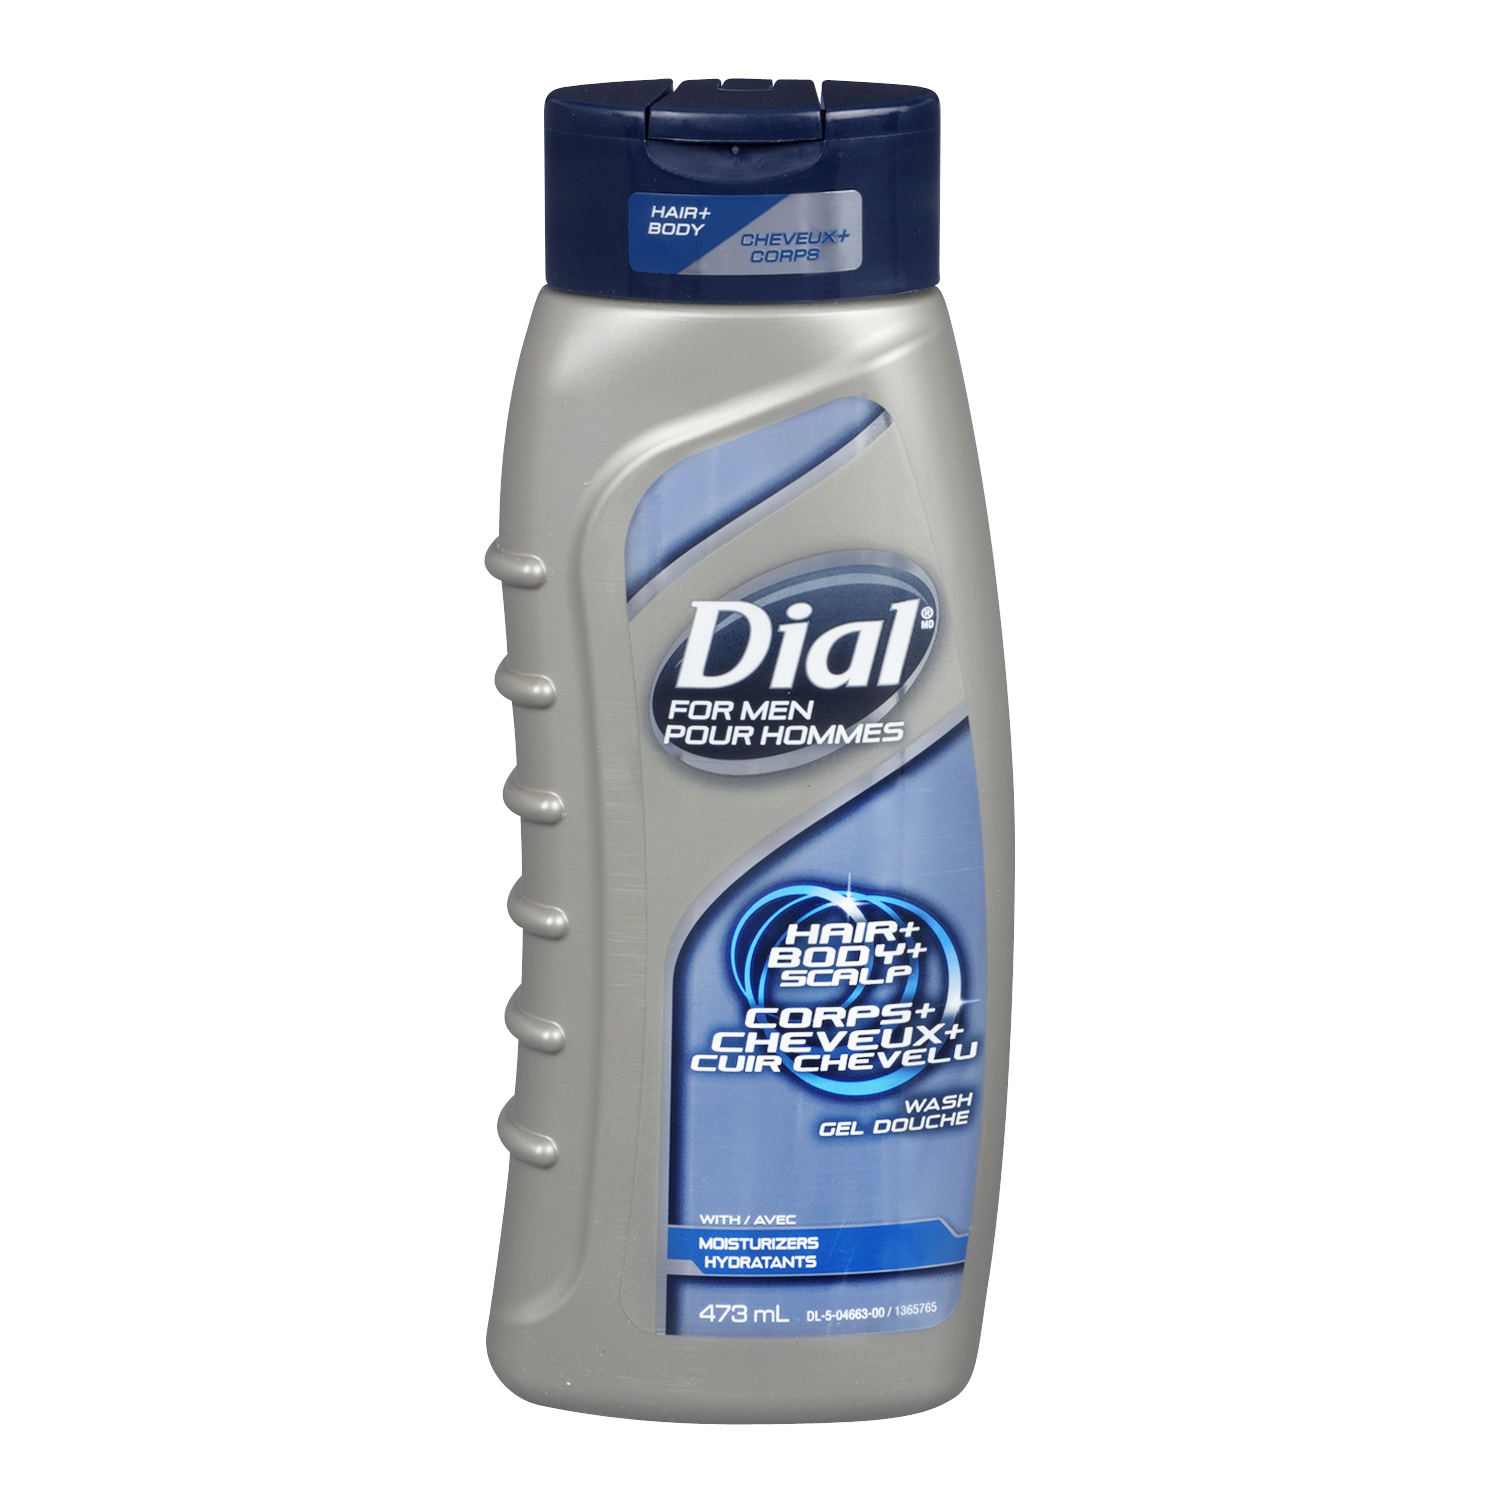 Dial For Men Hair + Body + Scalp Wash, With Moisturizers, 473 mL